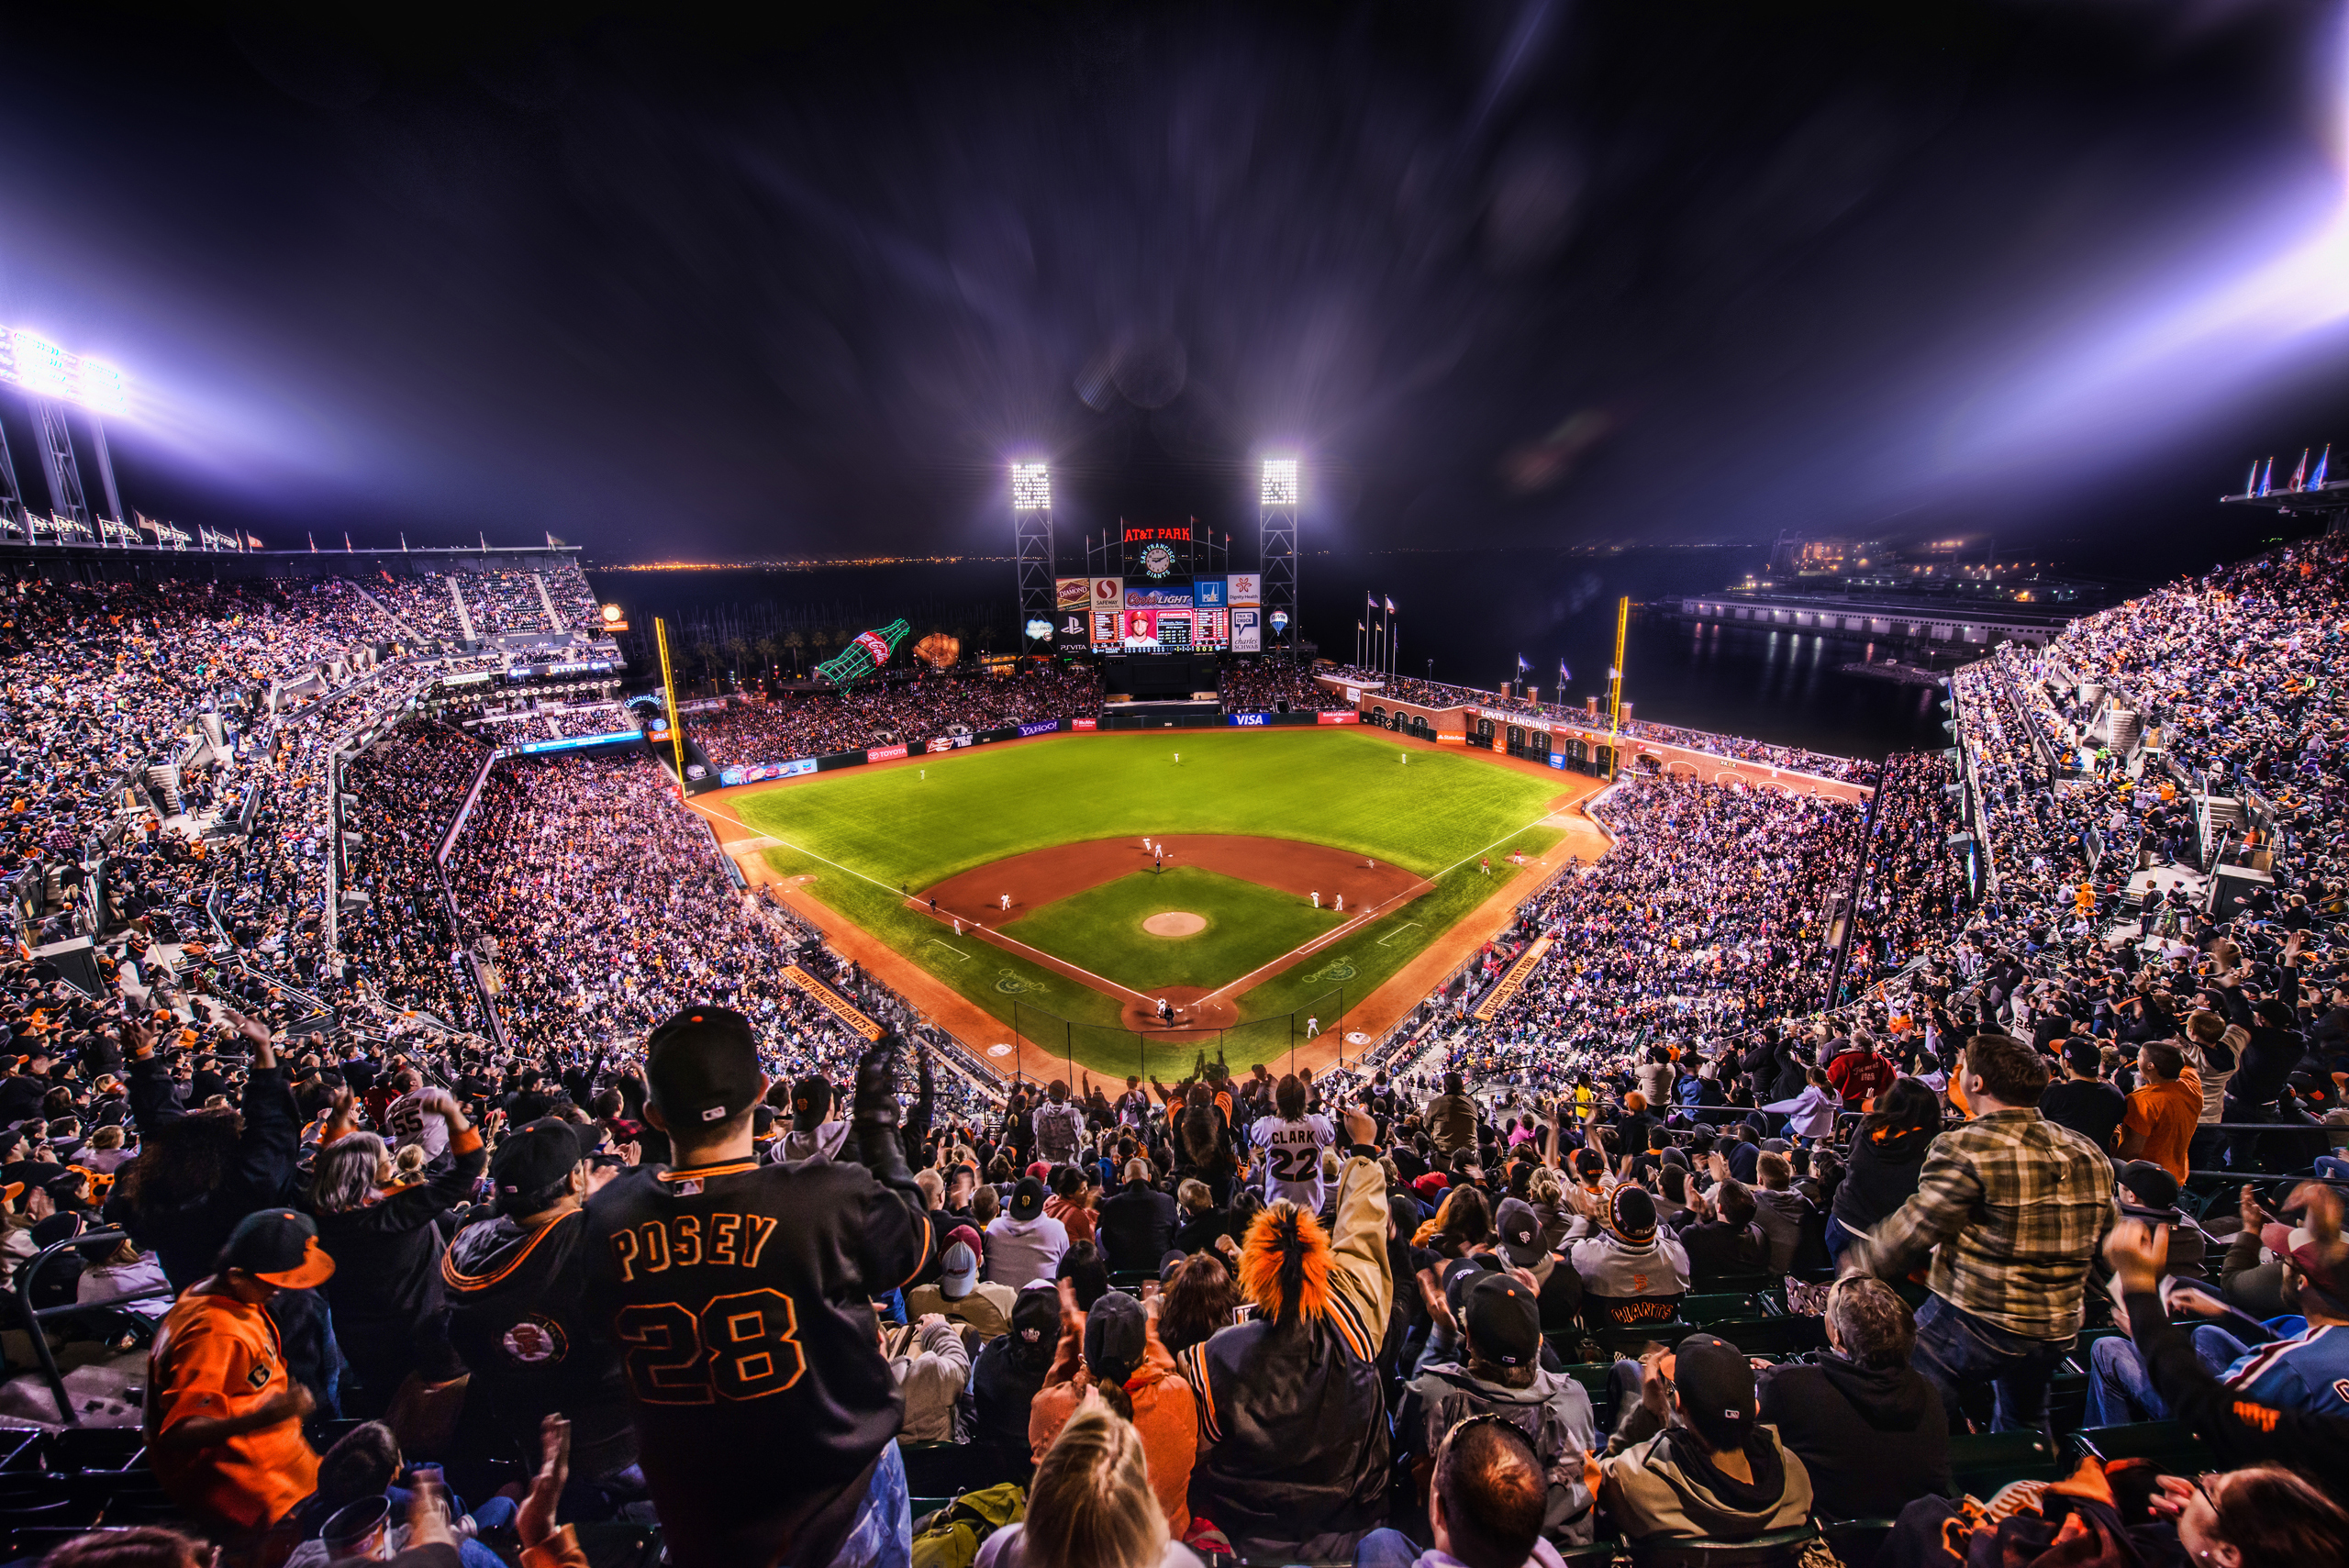 San Francisco Giants Stadium Wallpaper: 5 San Francisco Giants HD Wallpapers